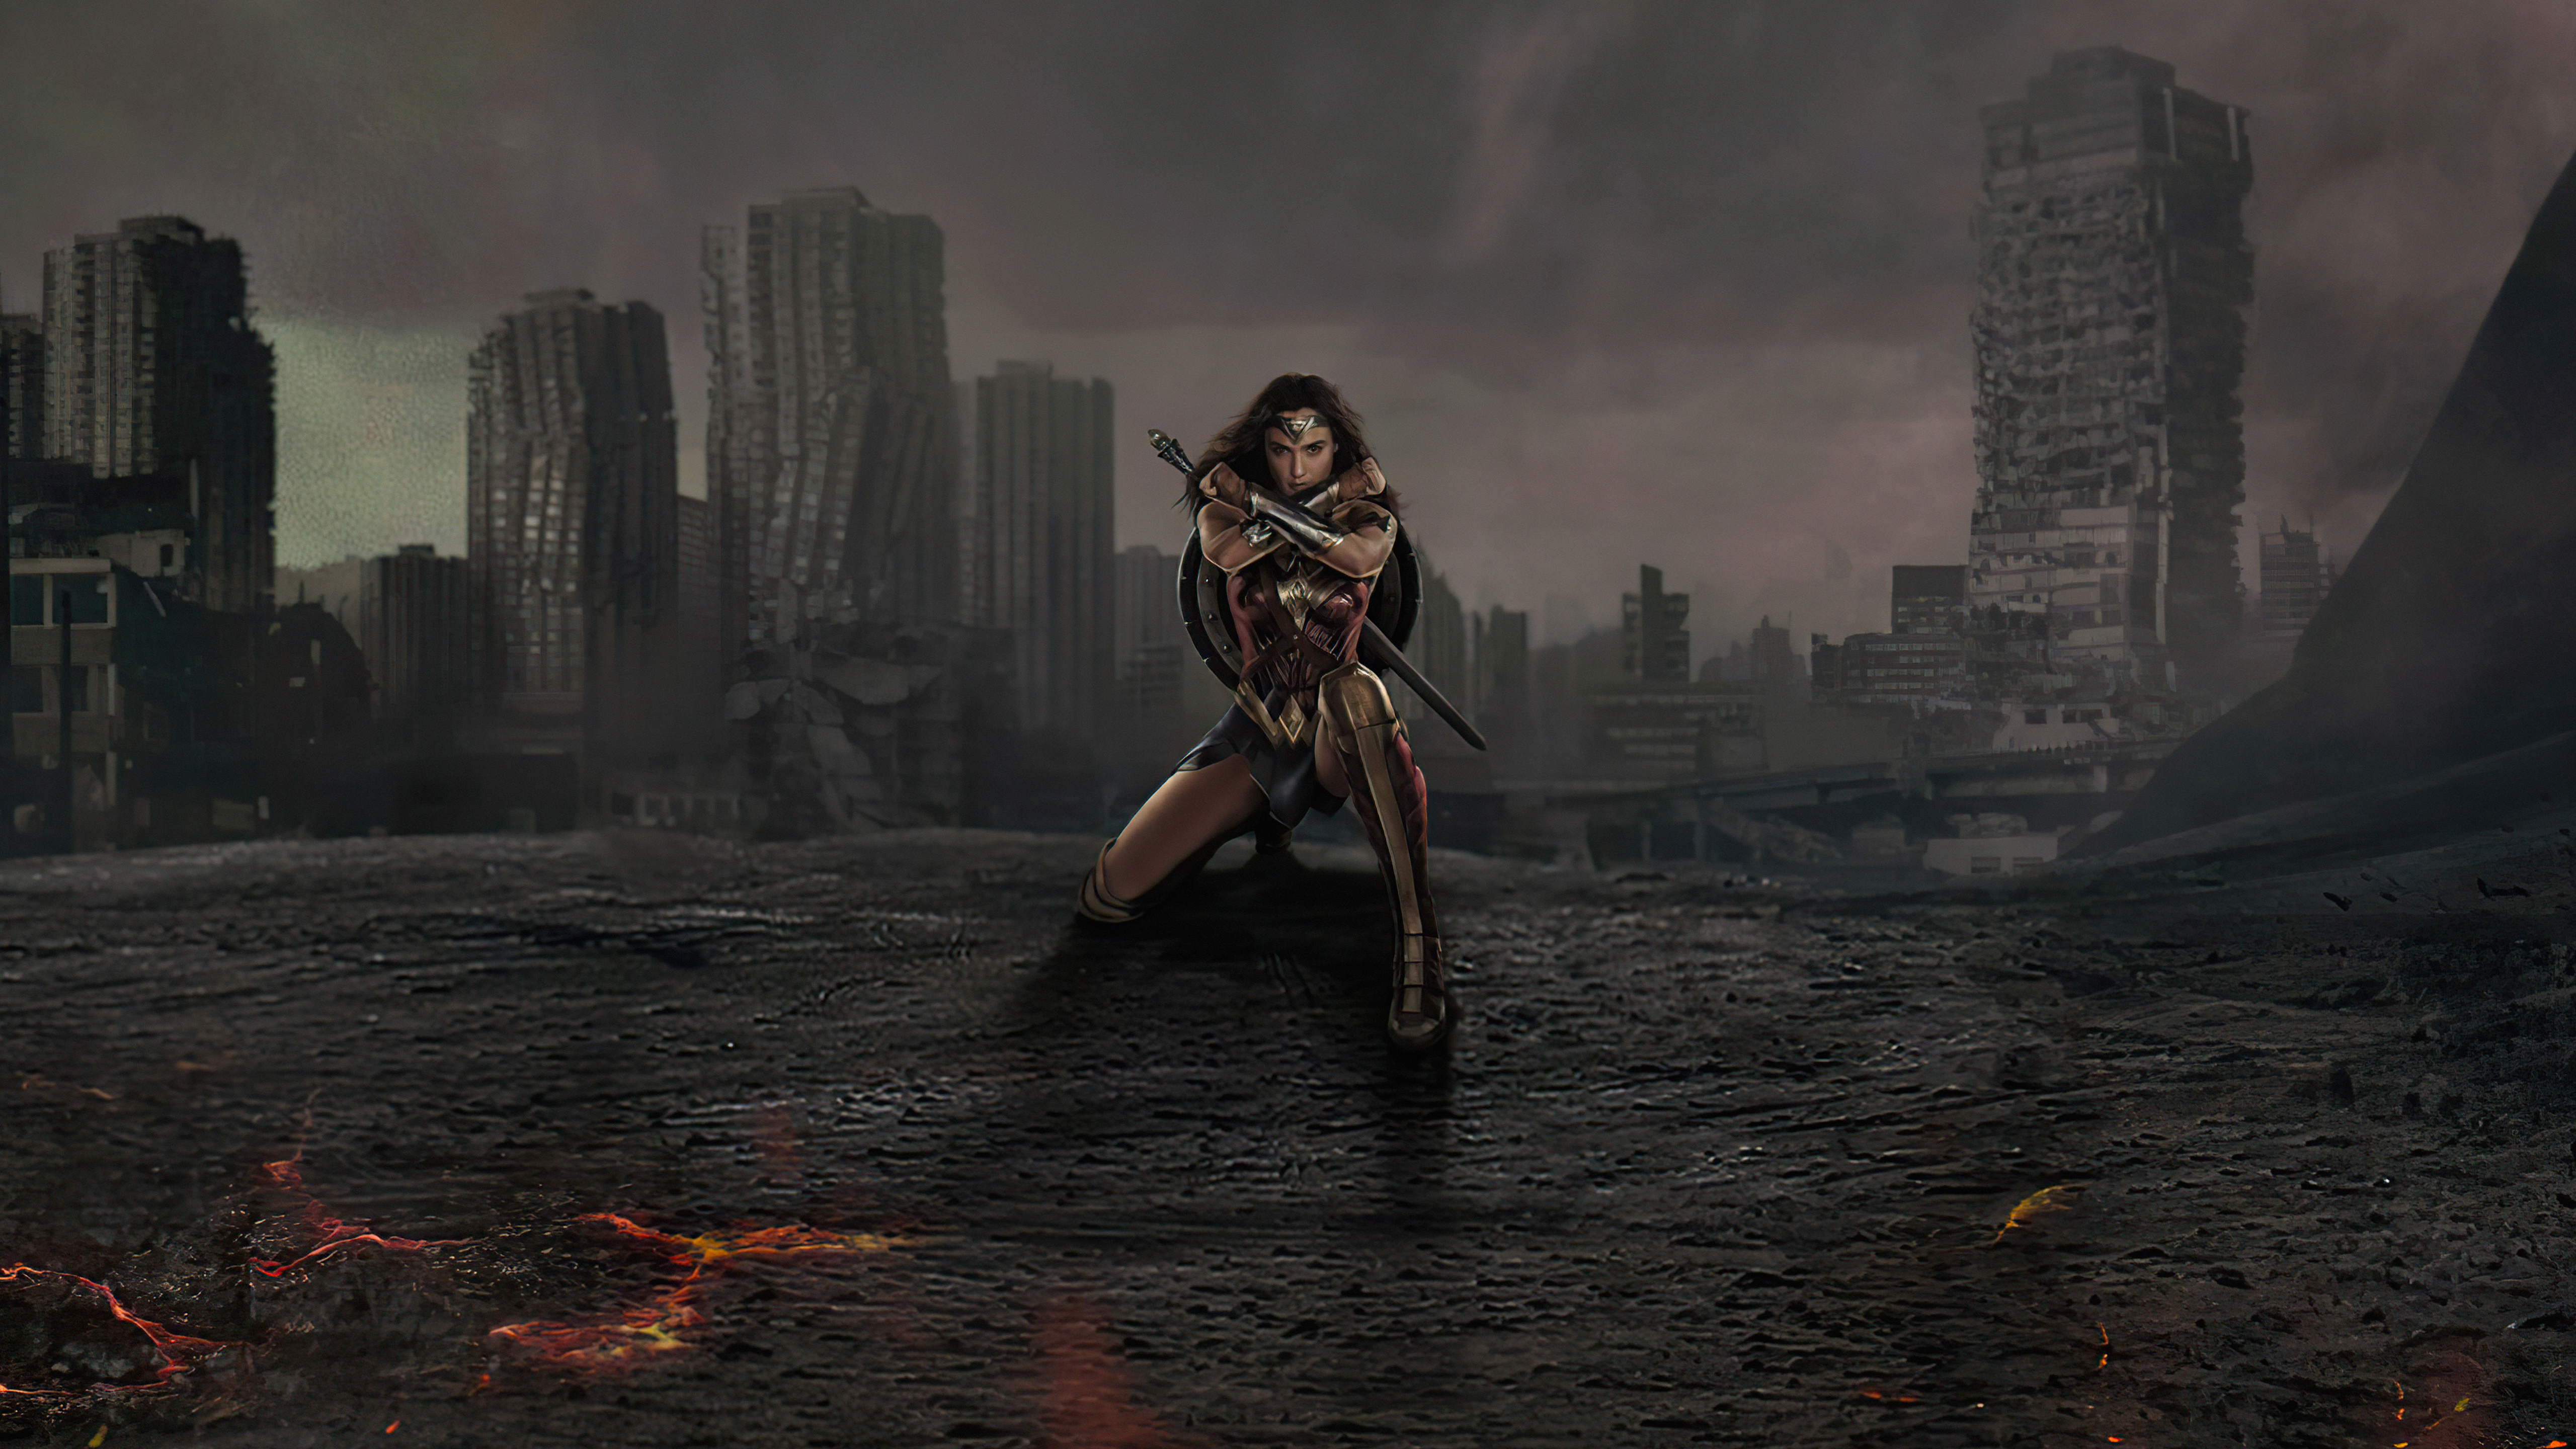 wonder woman the warrior of justice league 4k 1617449355 - Wonder Woman The Warrior Of Justice League 4k - Wonder Woman The Warrior Of Justice League 4k wallpapers